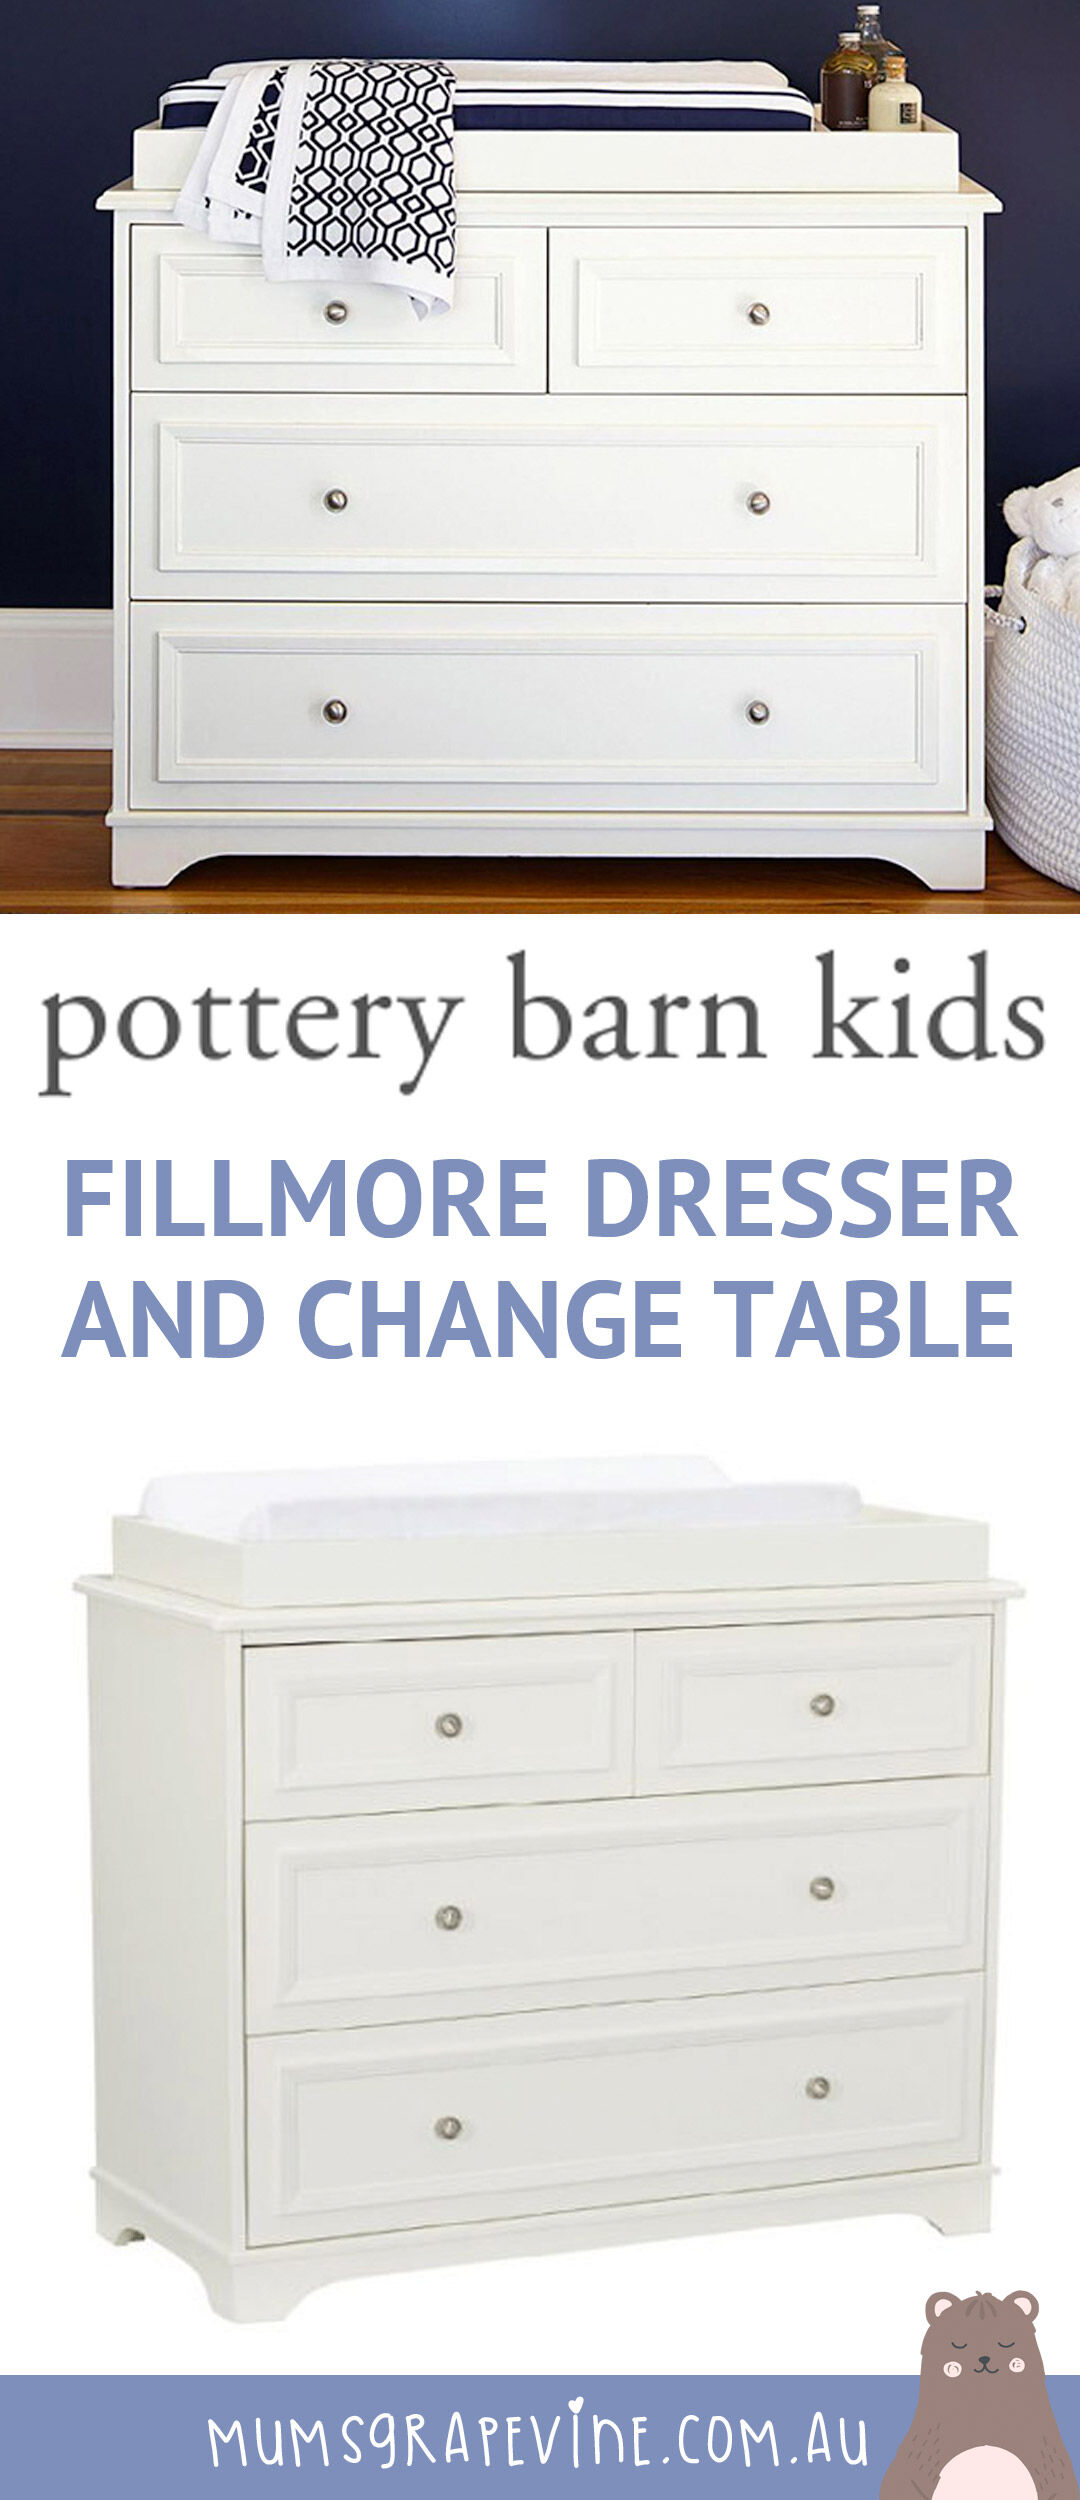 Pottery Barn Kids Fillmore dresser and change table